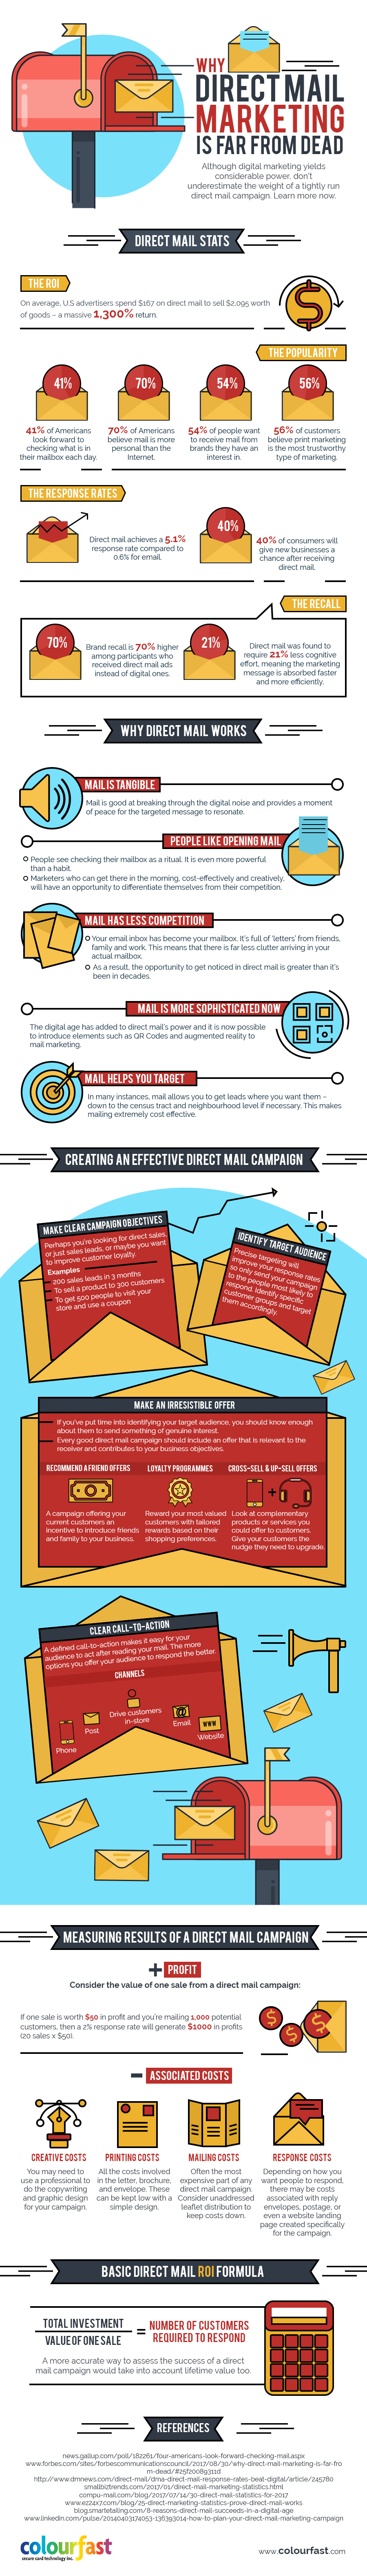 Why-Direct-Mail-Marketing-is-Far-From-Dead